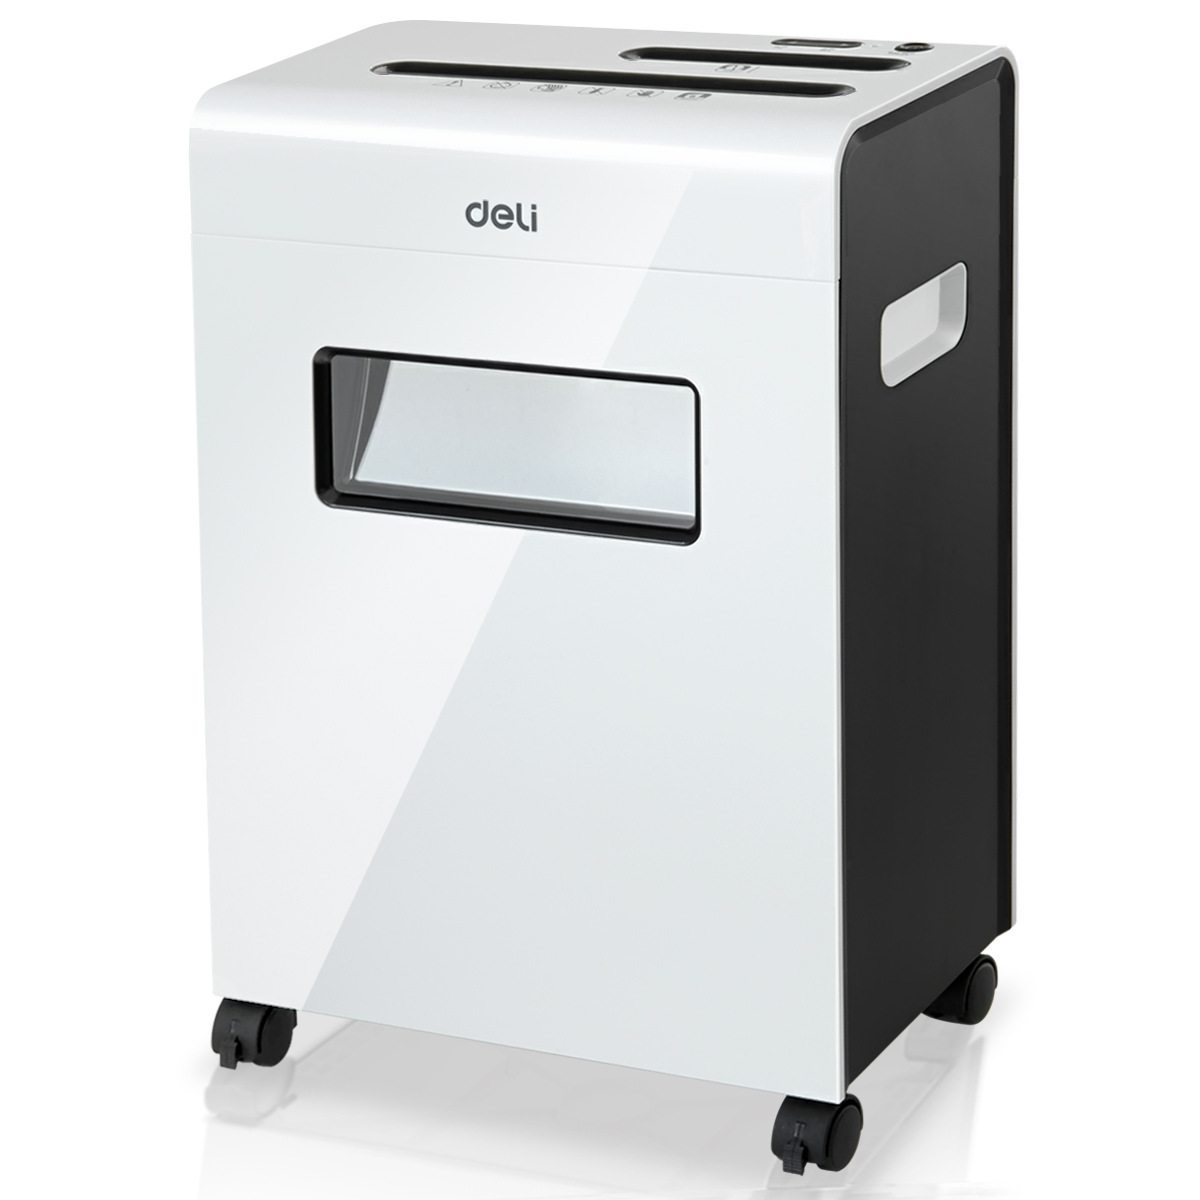 Deli 9911 Tablet Series Multi-functional Paper Shredder Wholesale Currently Available Electric Paper Shredder Wholesale